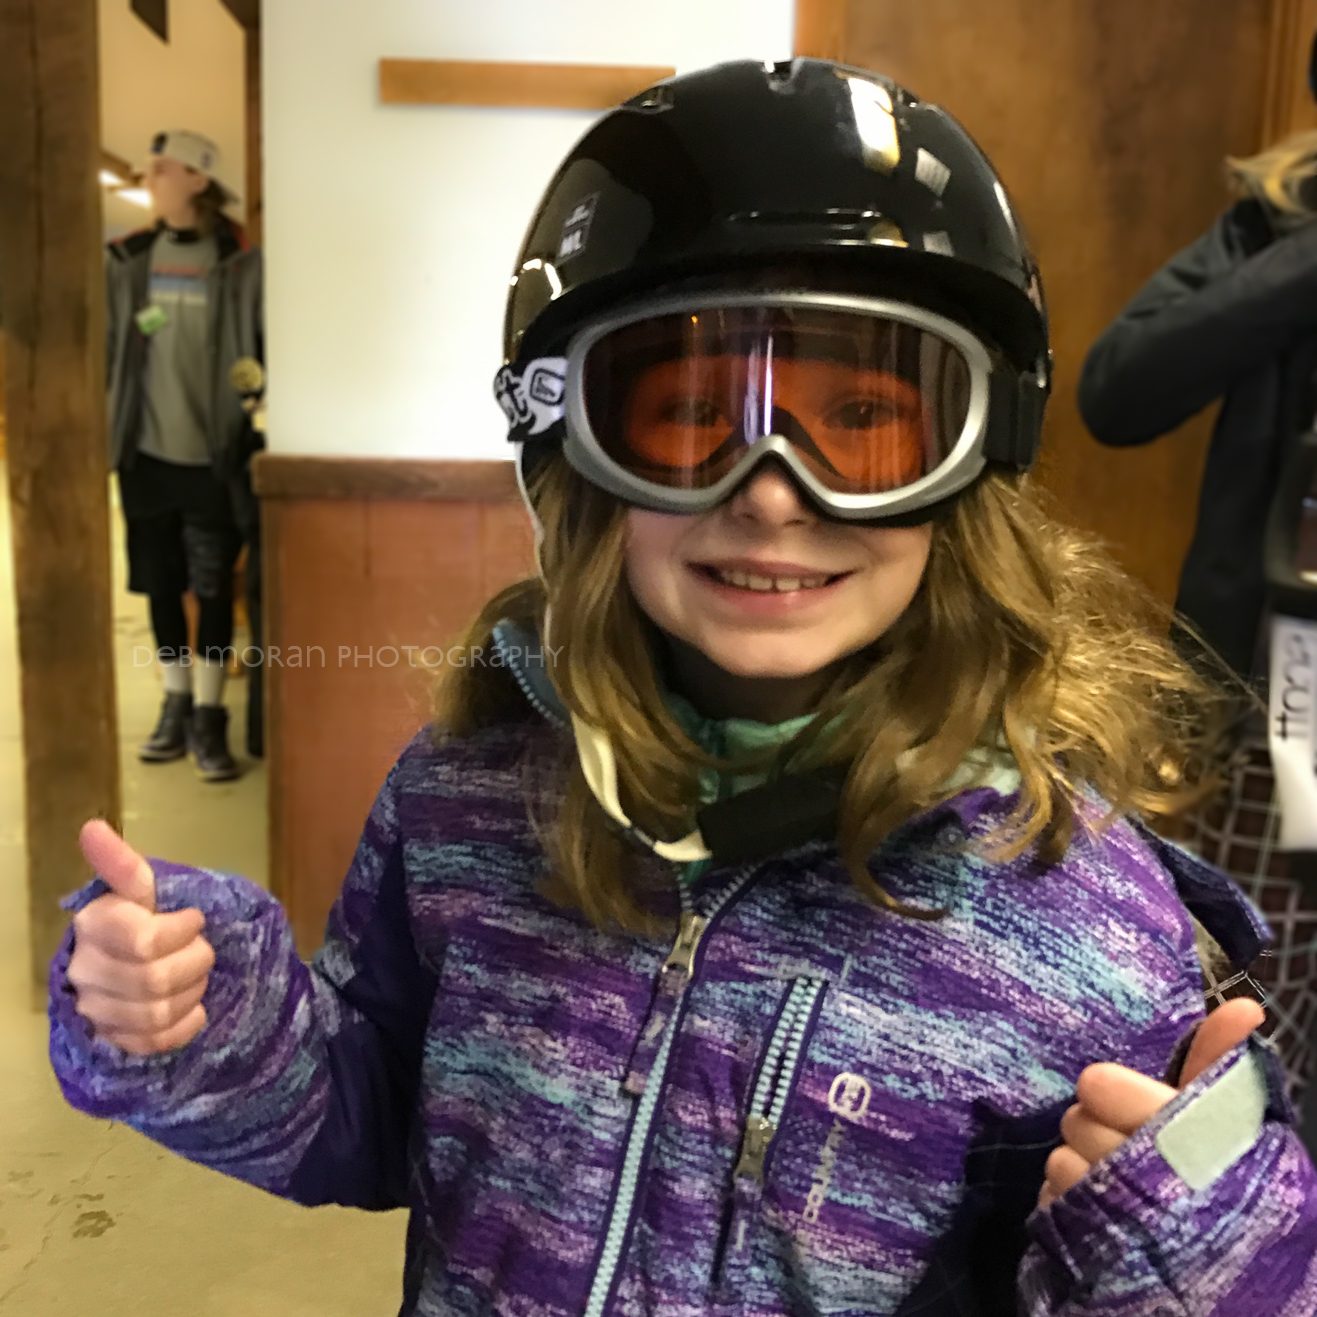 MoranFest 2016 – Chapter 3 – Snowsport & Silliness